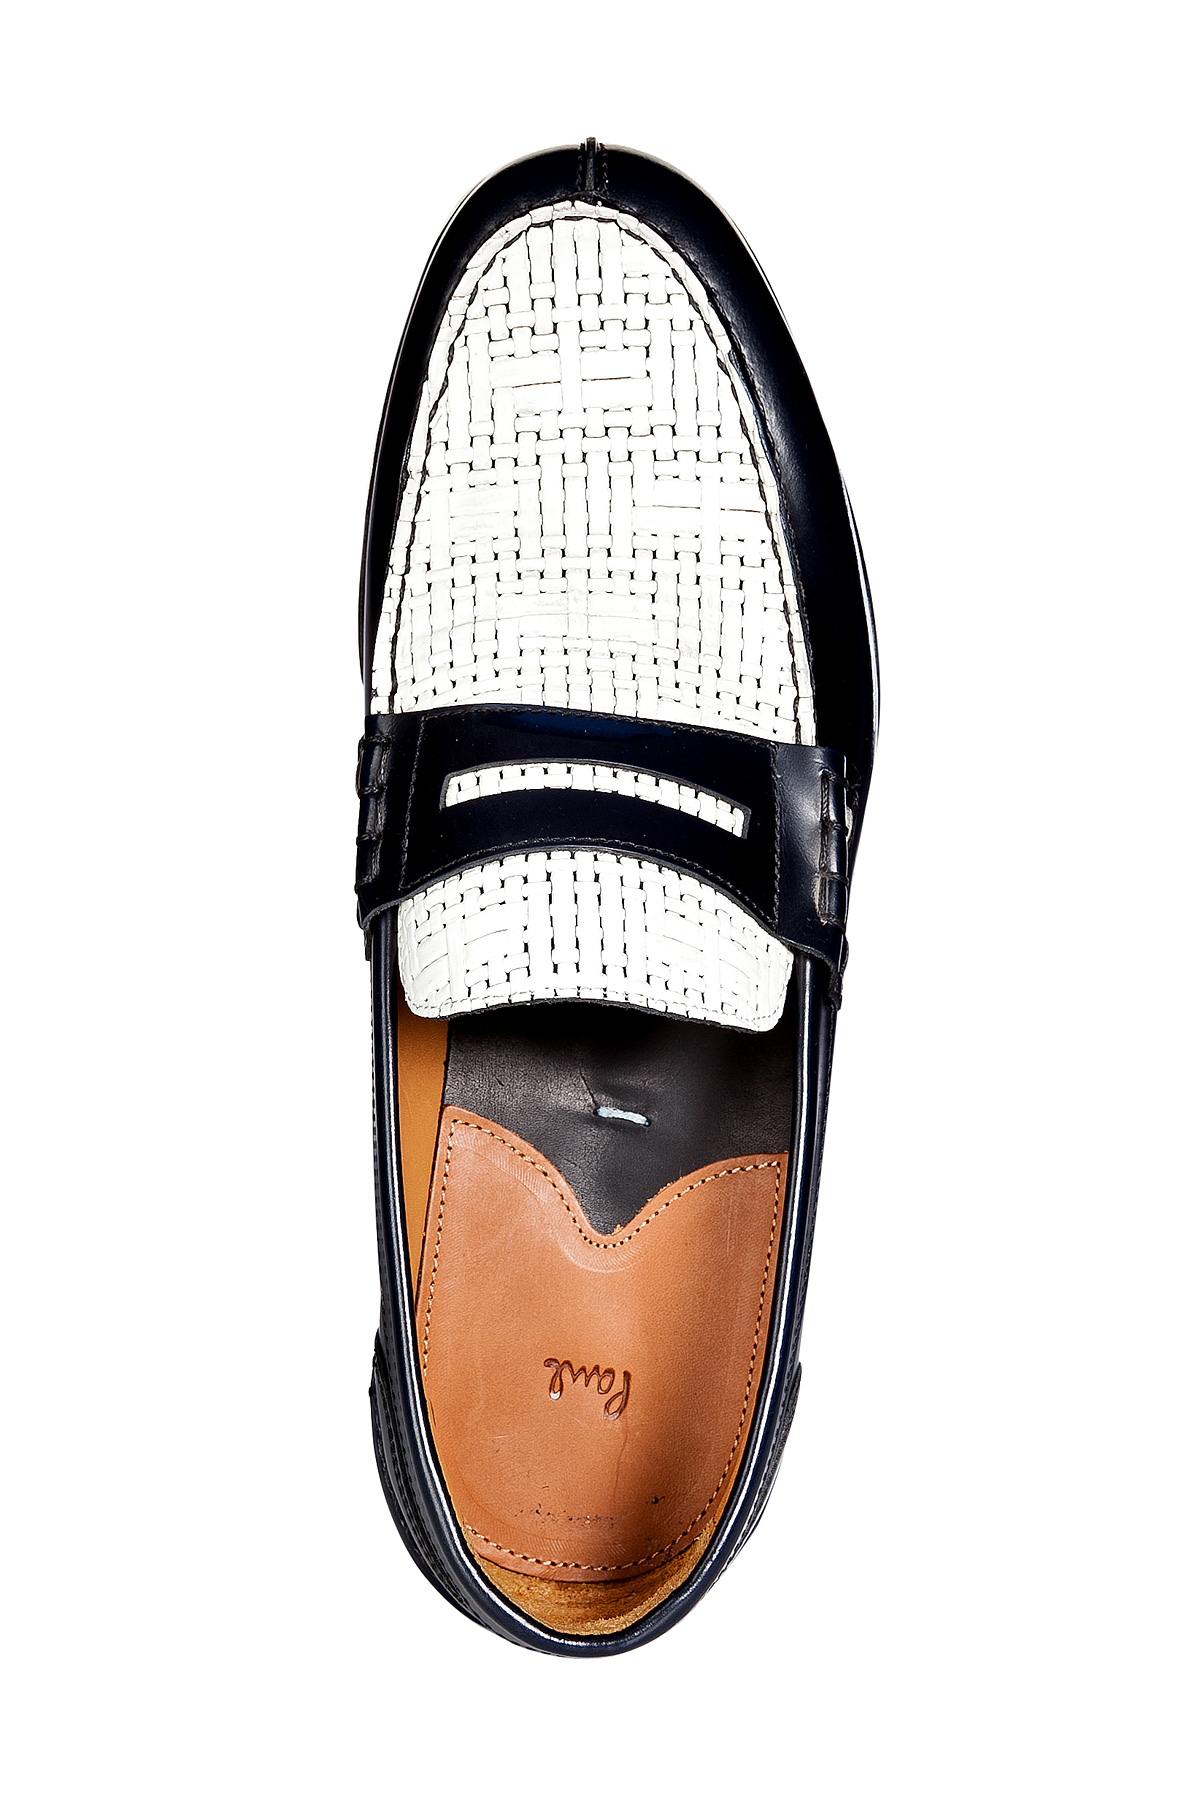 e42ed0fdb9c Lyst - Paul Smith Leather Twotone Konrad Penny Loafers in White for Men